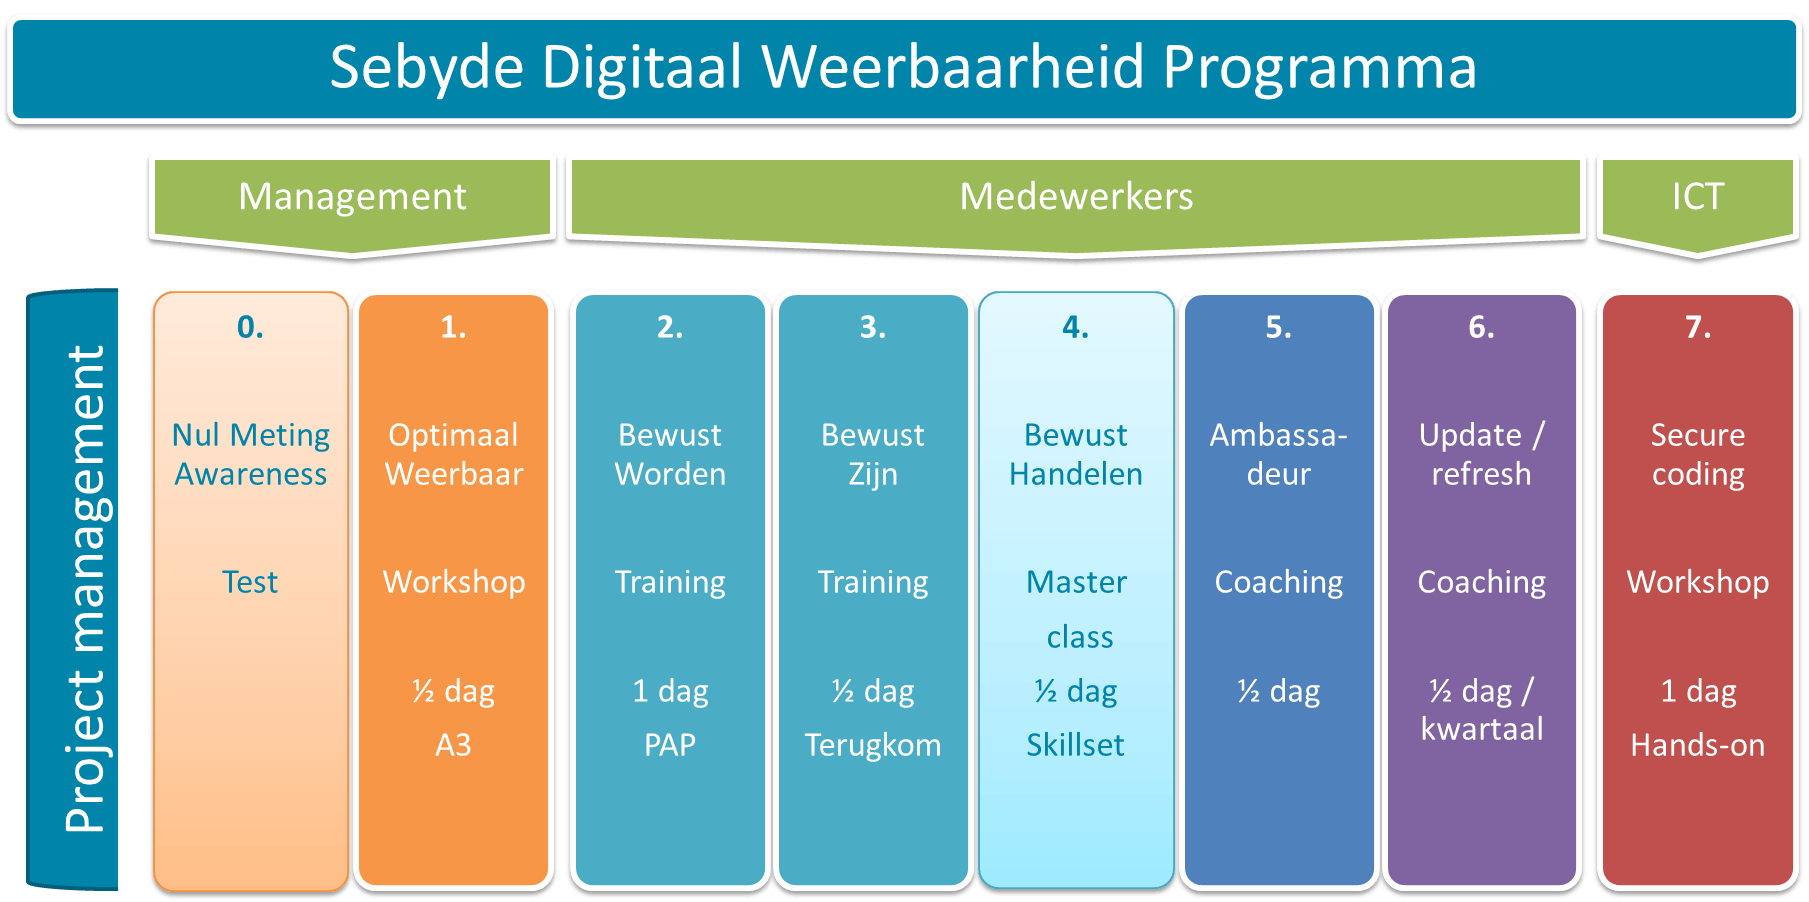 Security digitaal weerbaarheid programma awareness bewust training workshop management risico adviseur medewerker coaching